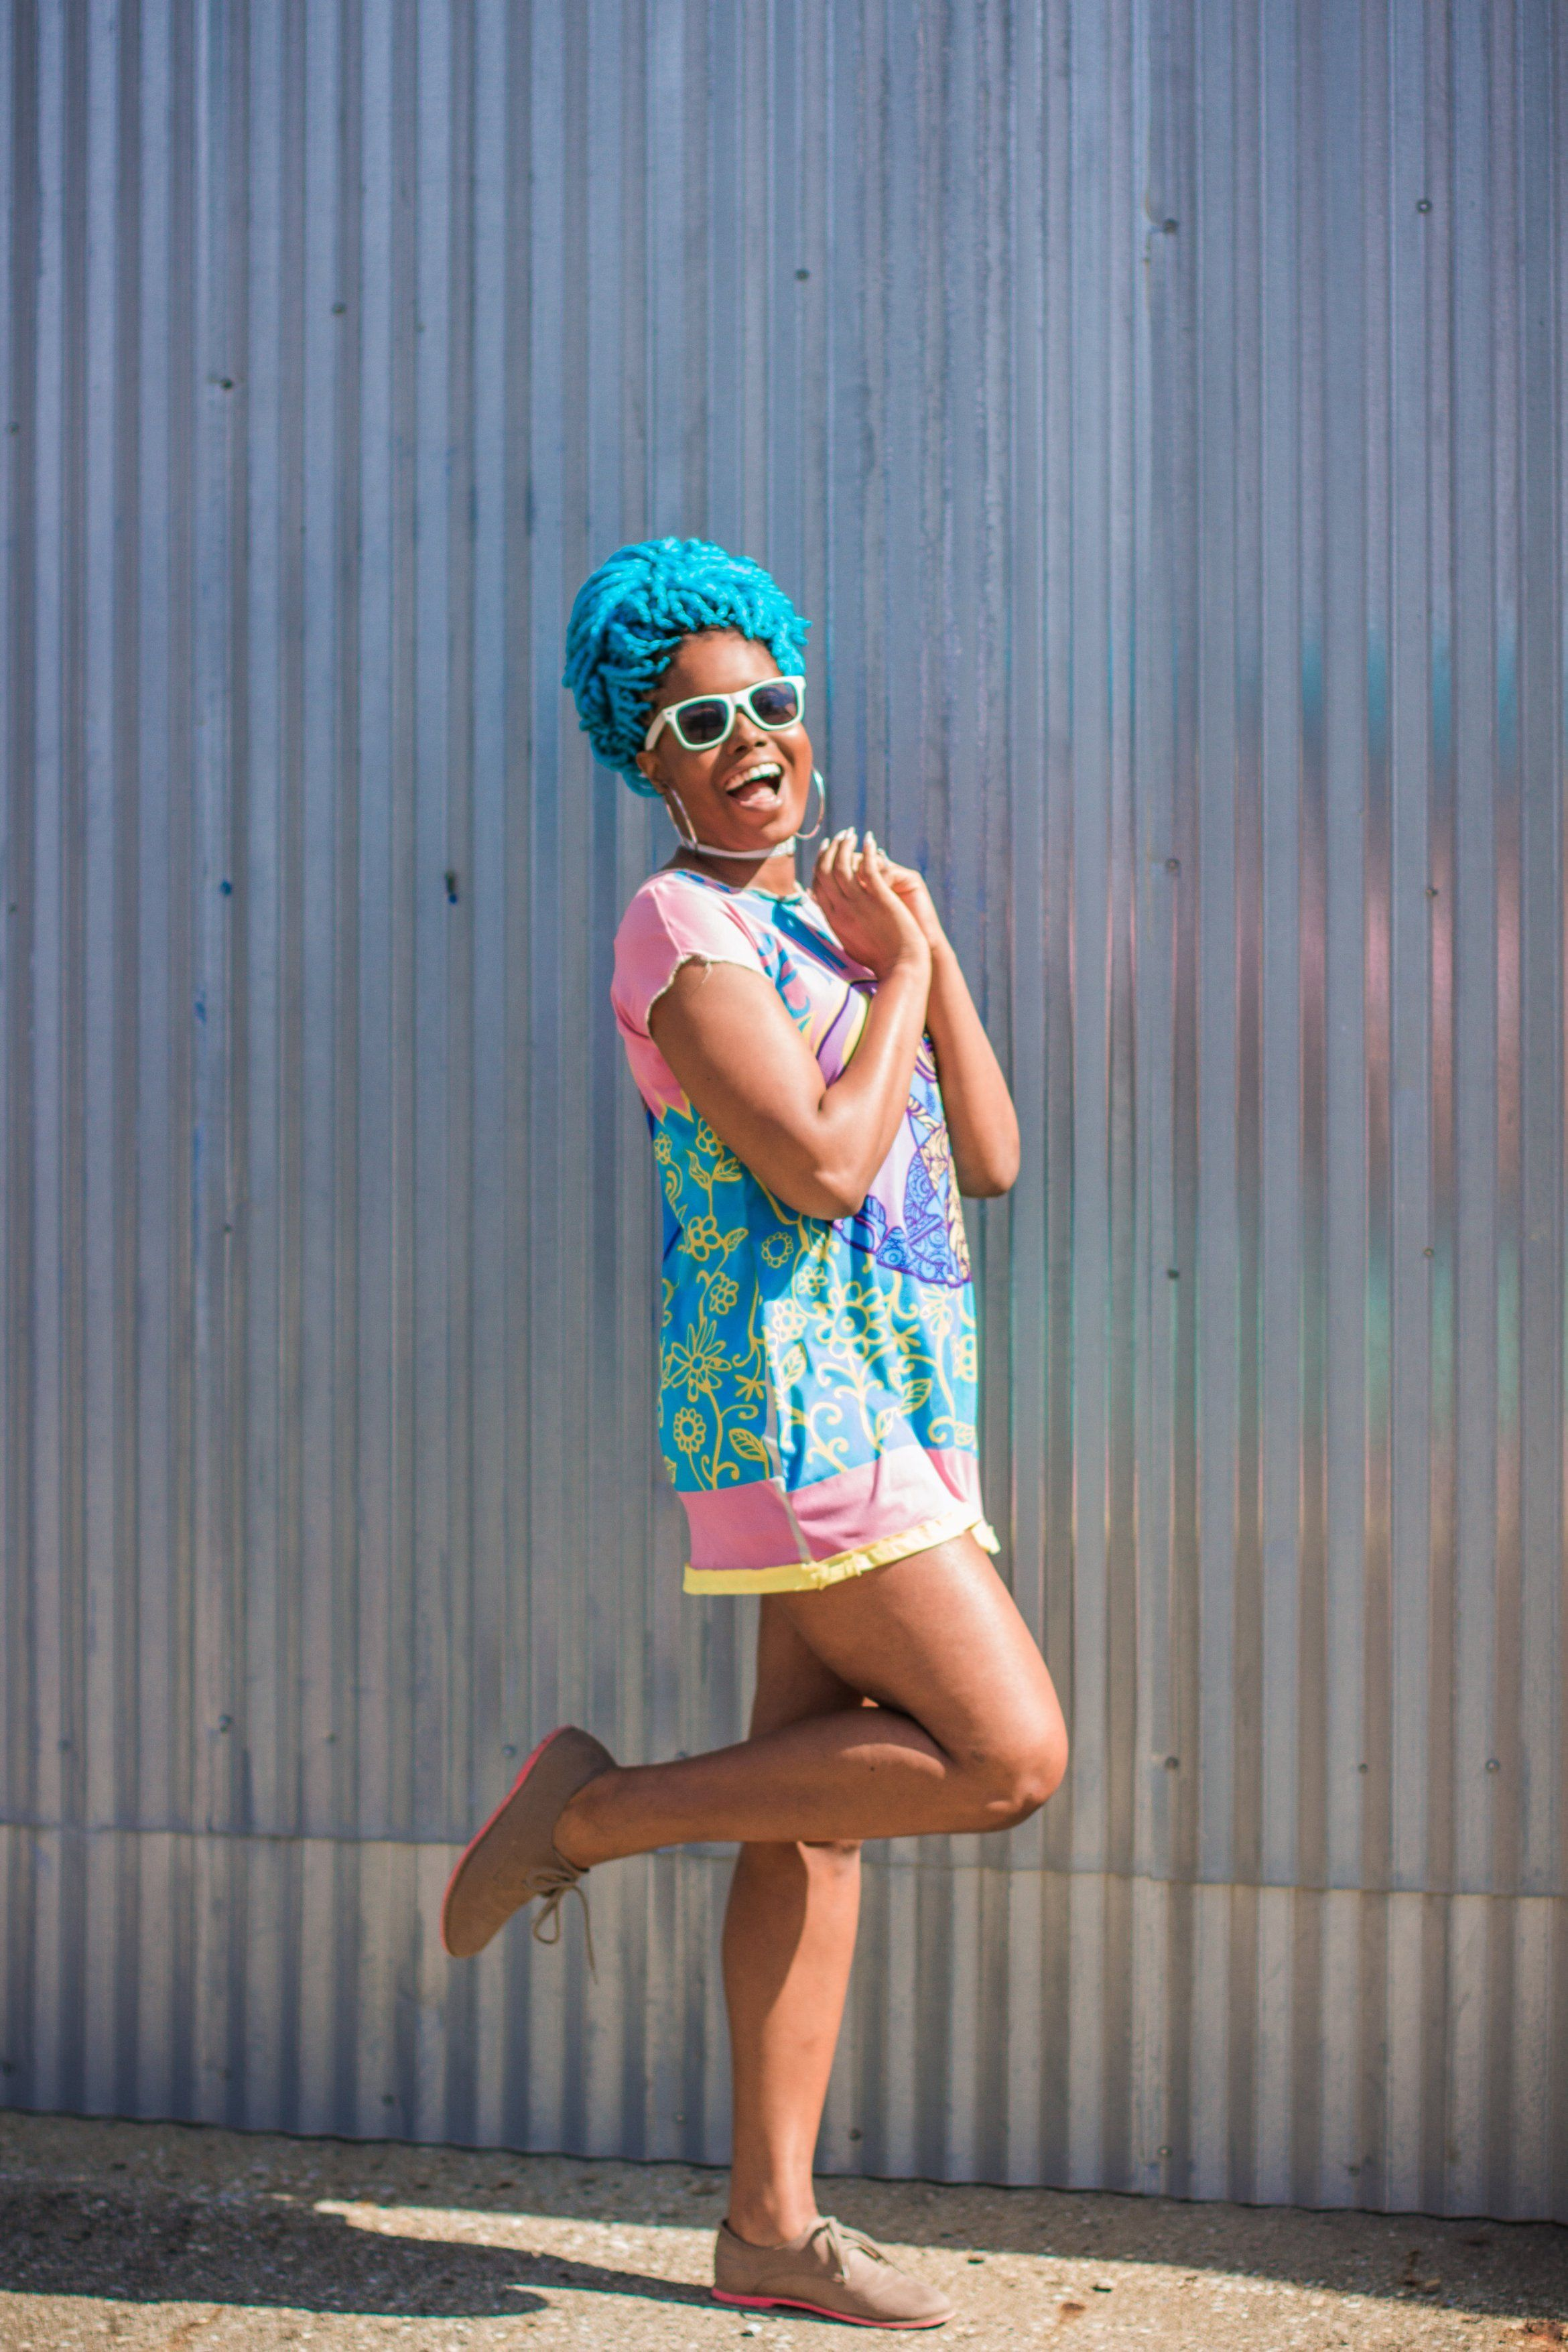 First Day of Spring Outfit | Mesh Dress Style | Colorful and Bold Dress | Black Girl In Colorful Hair